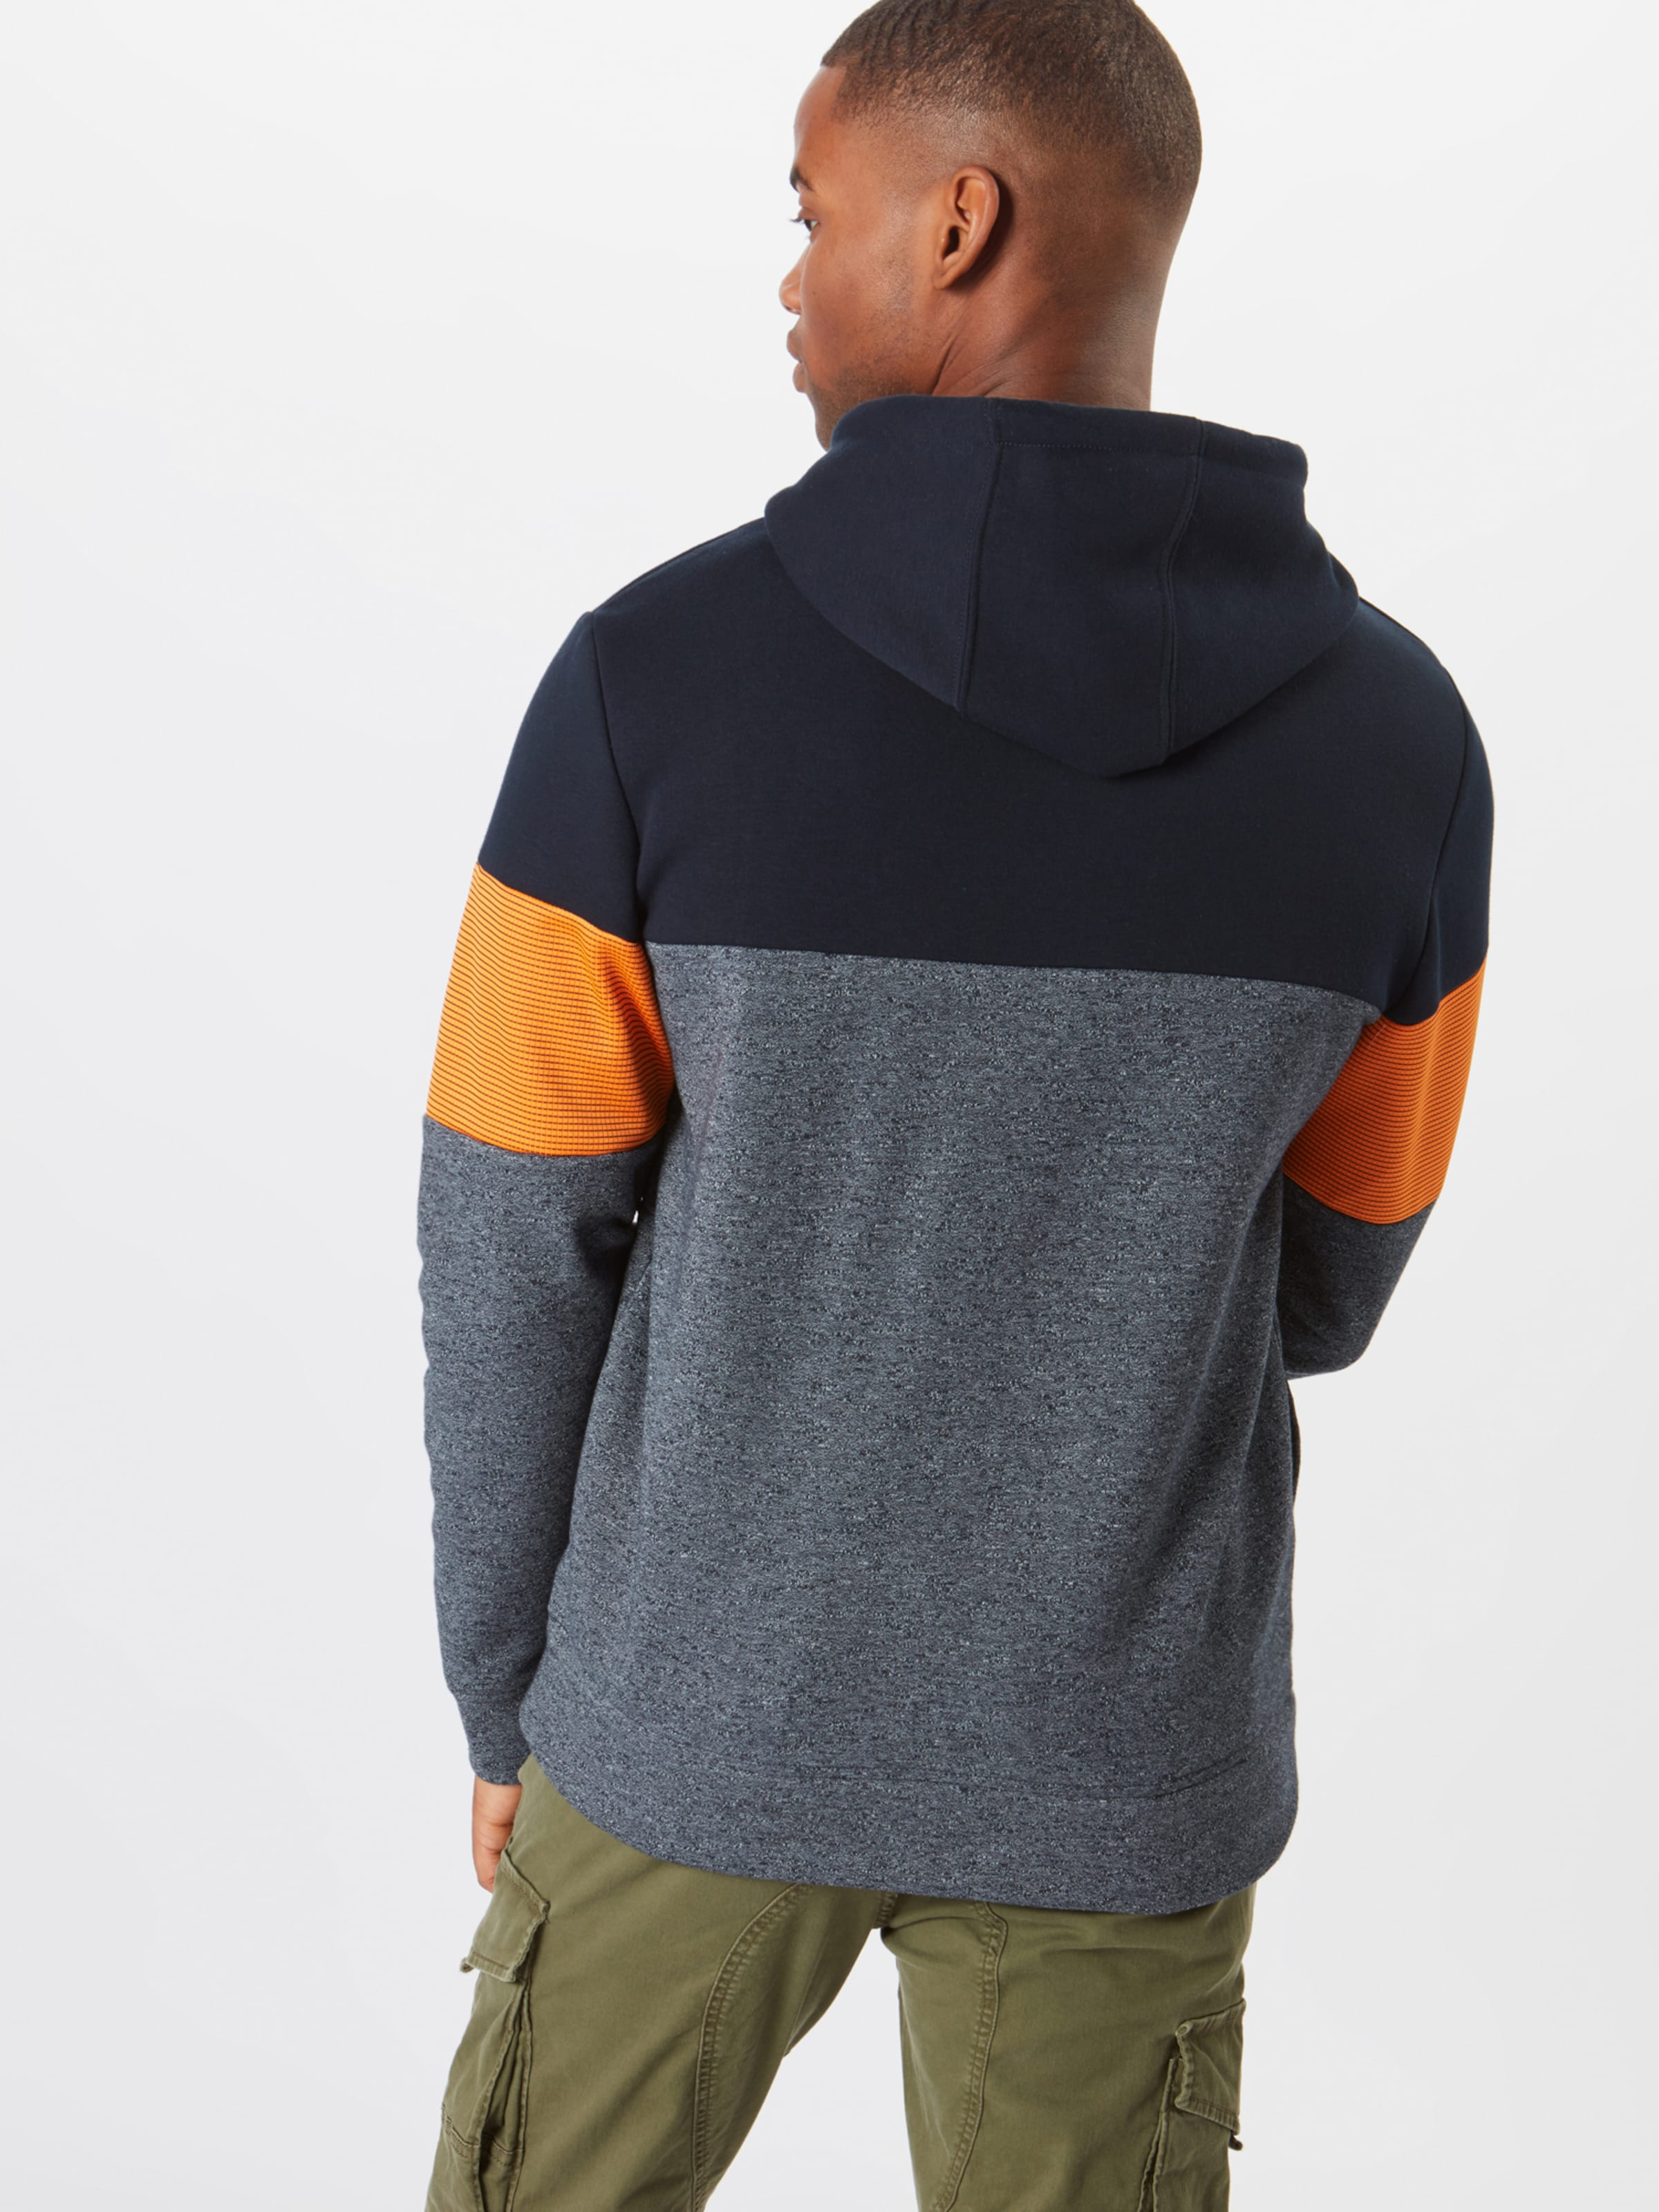 shirt Sweat Jones Hood' En Bleu Jackamp; FoncéOrange Sweat 'jcomart 4Rq5j3LA